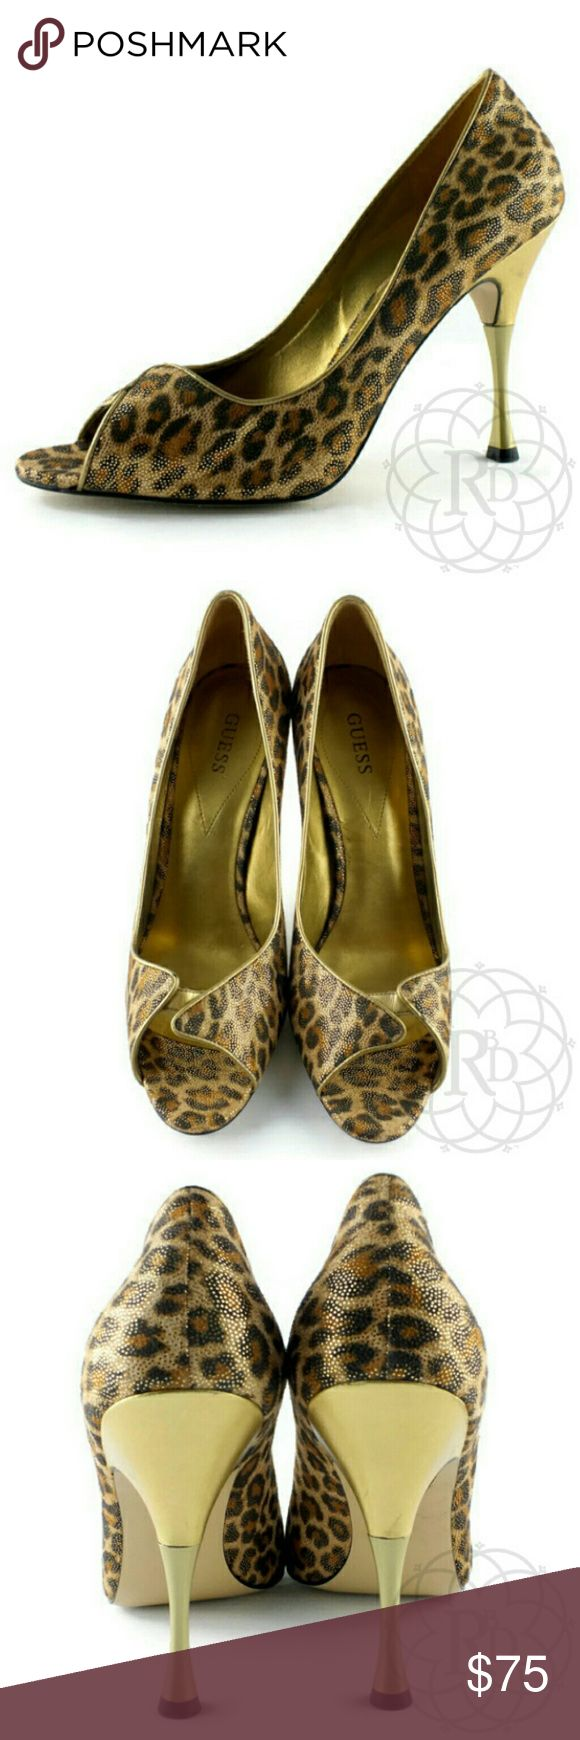 "NEW Guess Marciano Gold Leopard Peep-toe Heels Stunning Guess Marciano Gold Leopard Peep-toe Heels  ▪ Heel Height: 4 3/8"" inches  ▪ All measurements are approximate  💥 Brand New without Tag or Original Box   ✋ All Sales Final 